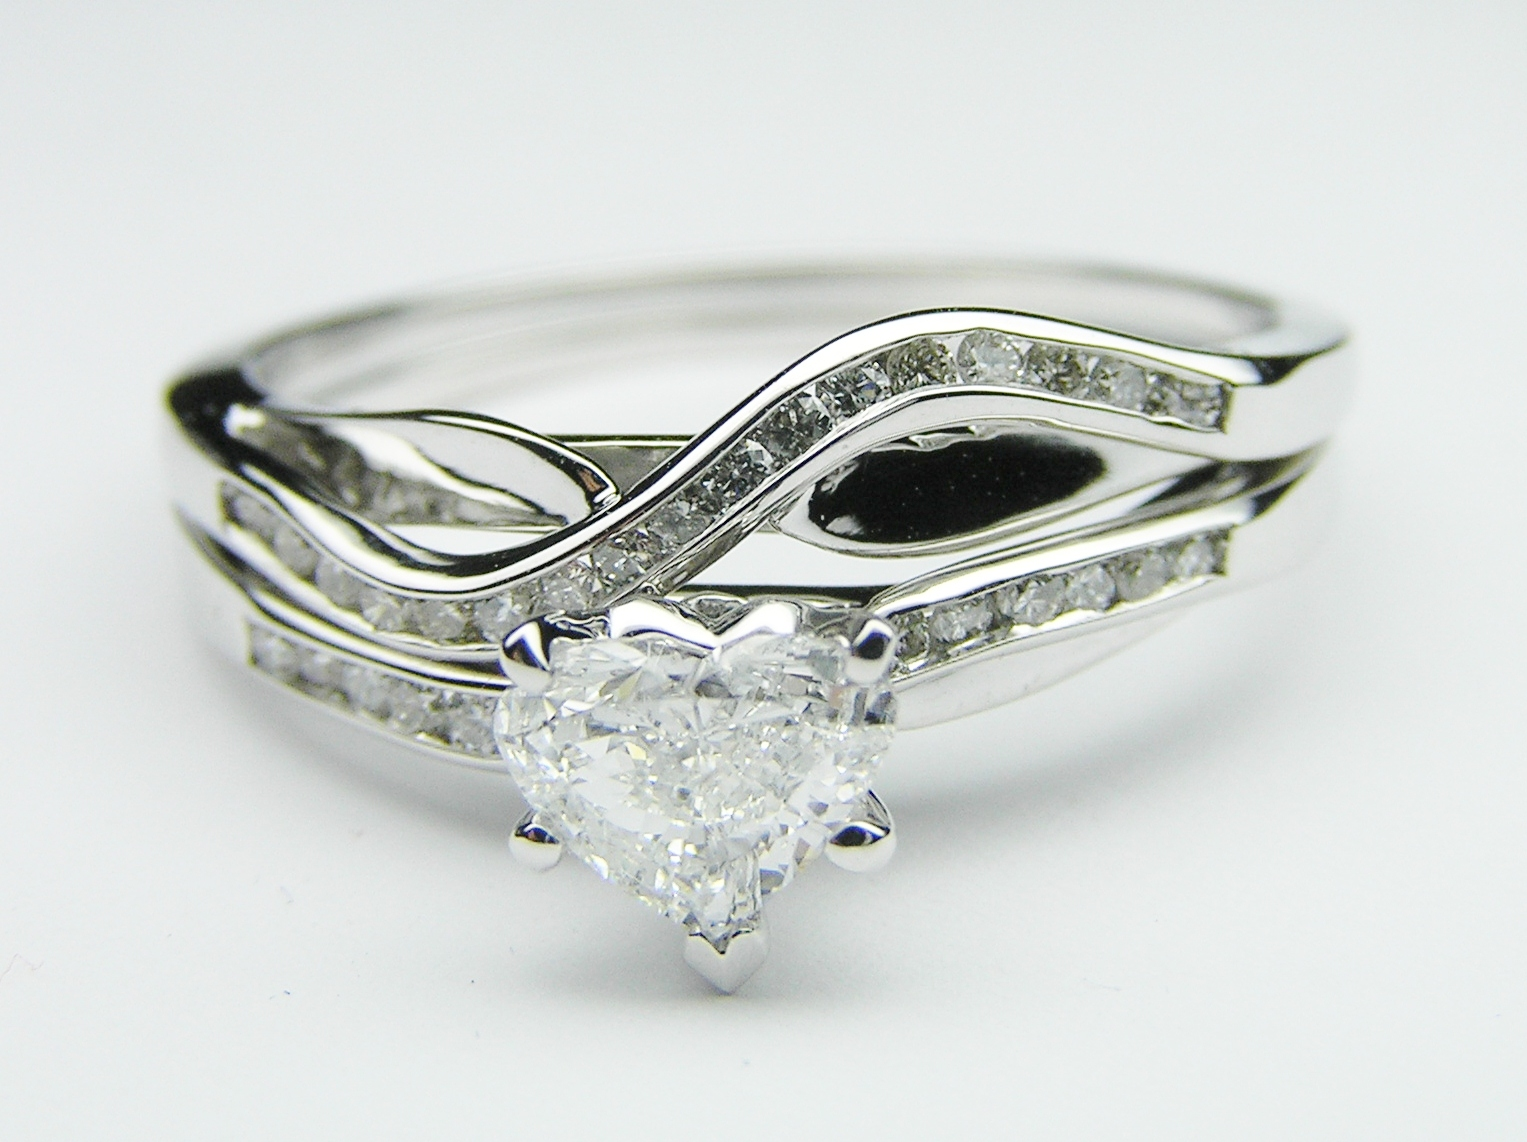 Engagement ring petite swirl heart shape engagement ring with engagement ring petite swirl heart shape engagement ring with diamond accents matching wedding band 025 tcw es721hsbs junglespirit Image collections